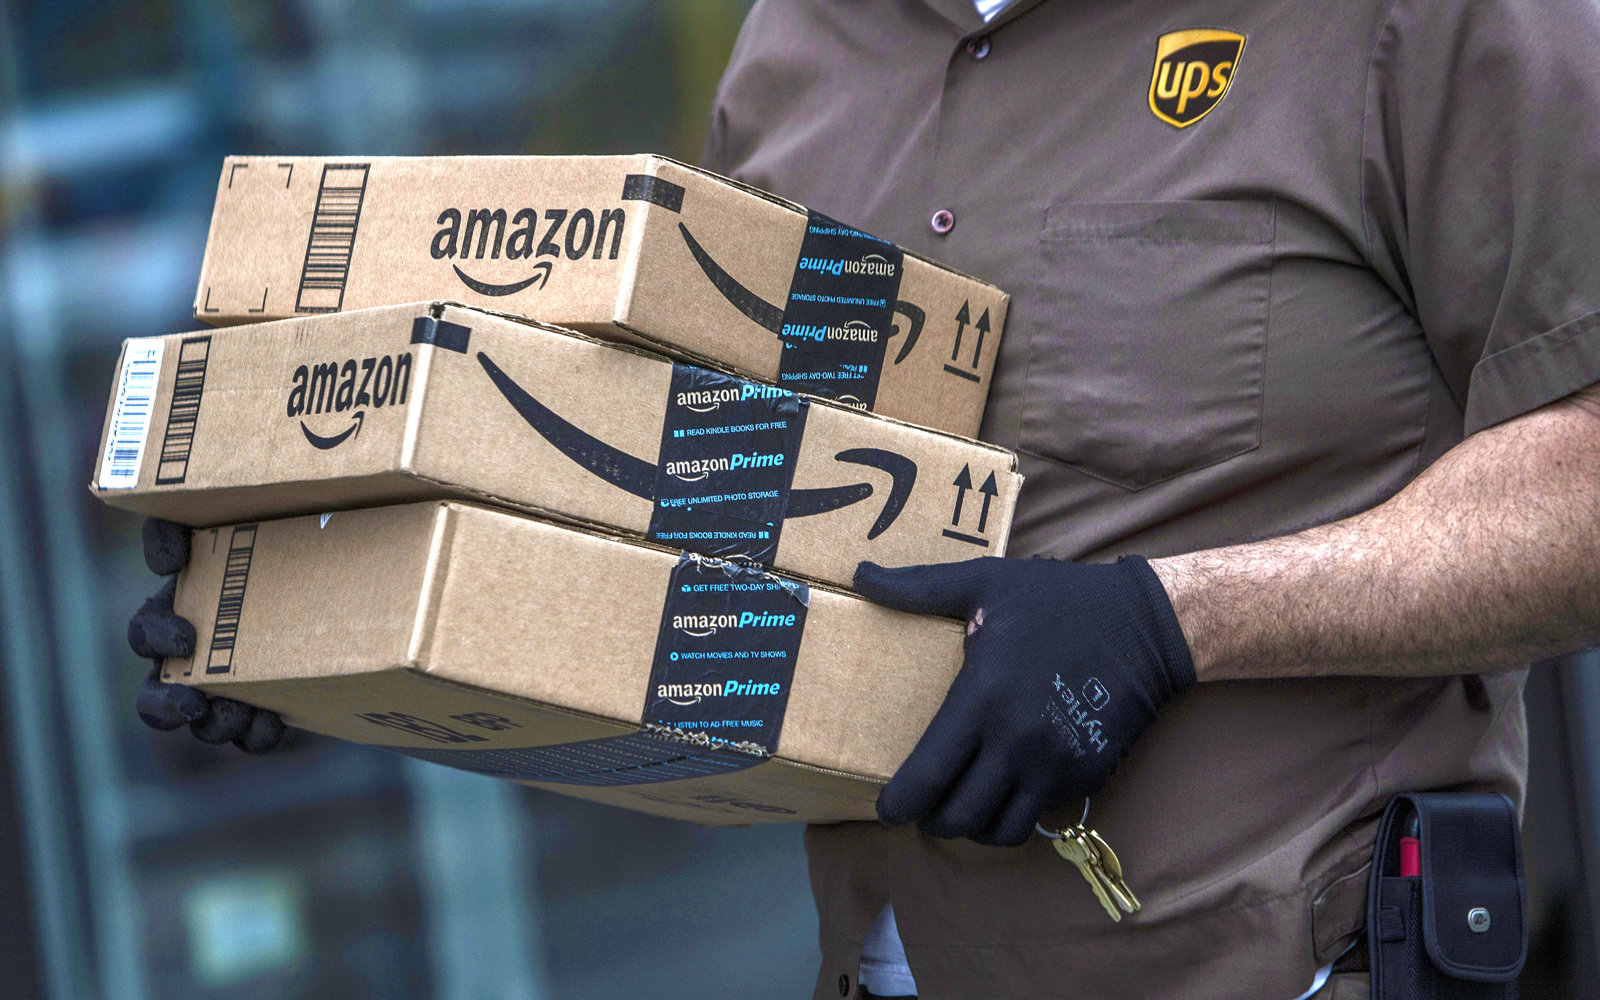 Amazon launches free same-day shipping for Prime members